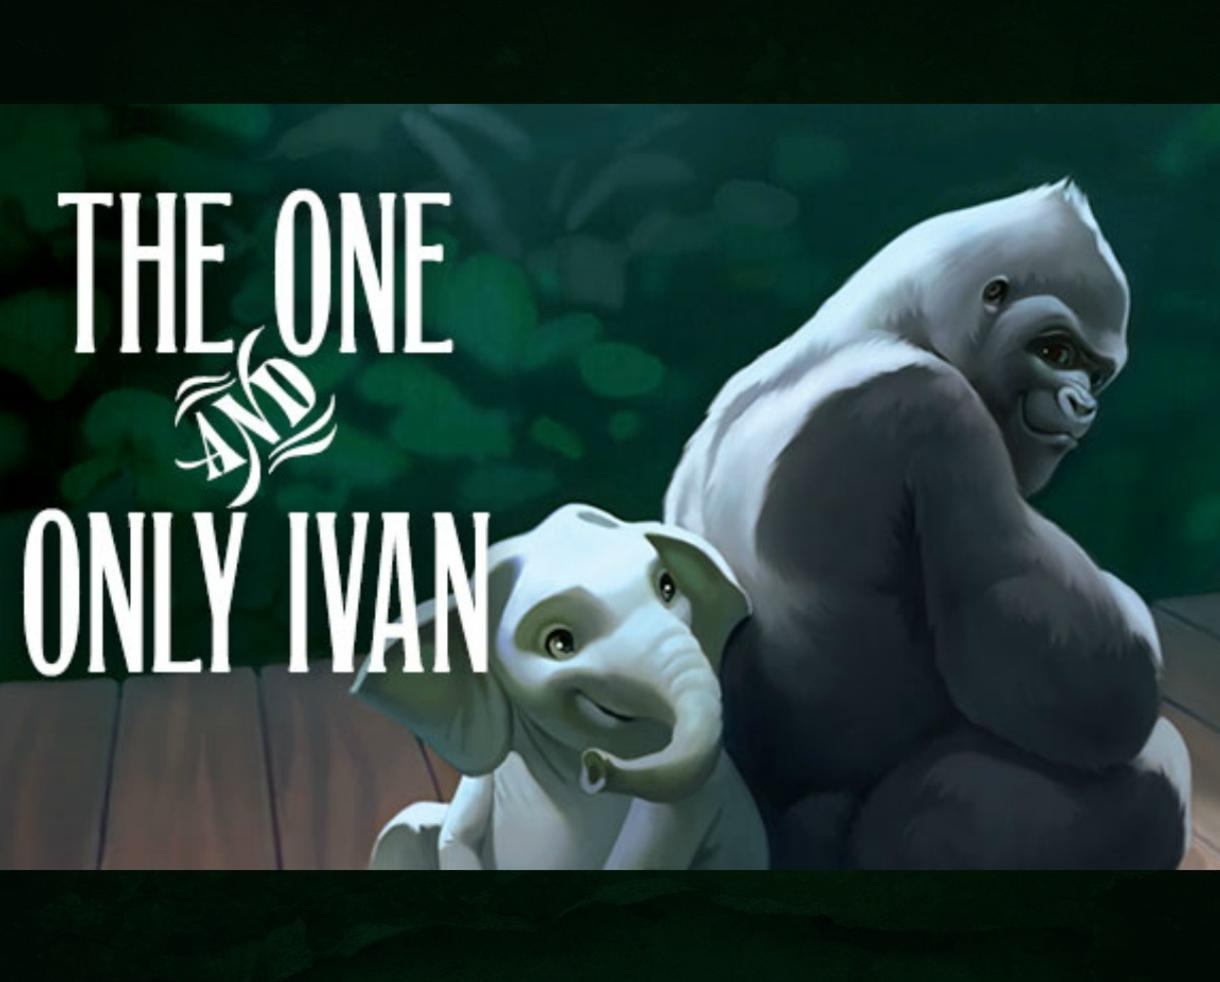 $10 for The One and Only Ivan at Synchronicity Theatre for Ages 5+ in Atlanta (50% Off)